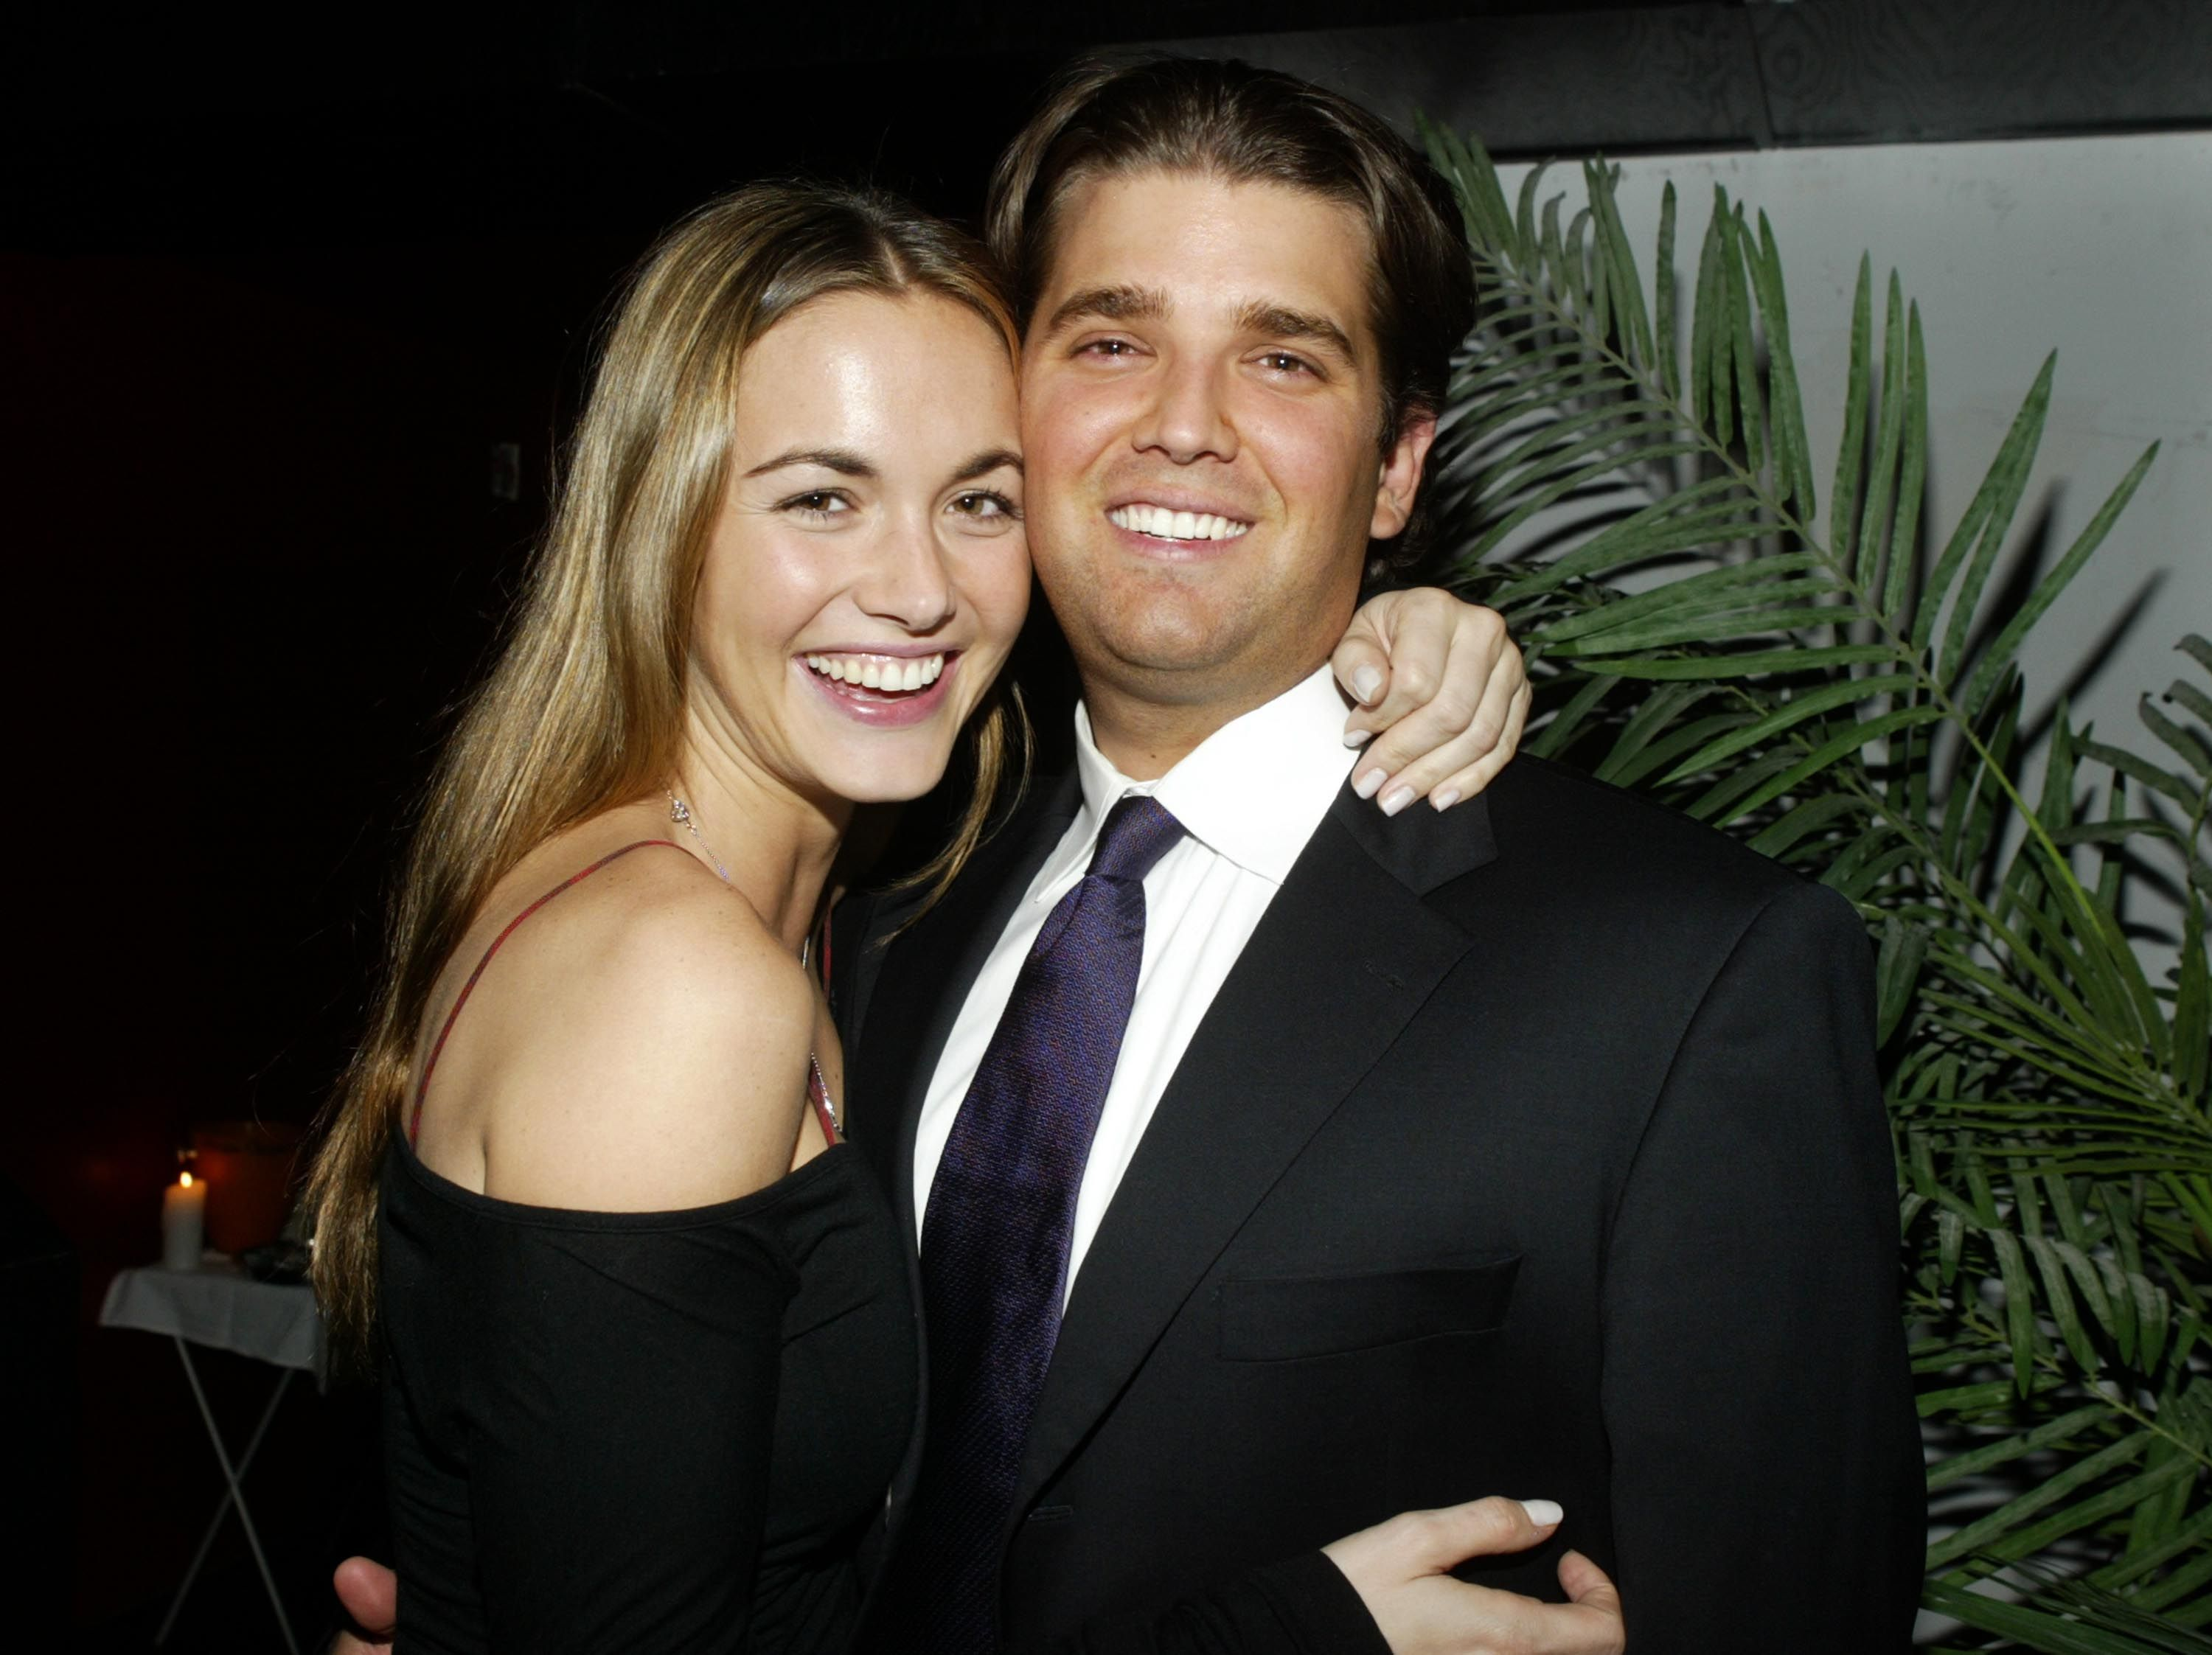 14 Things You Didnt Know About Vanessa Trump